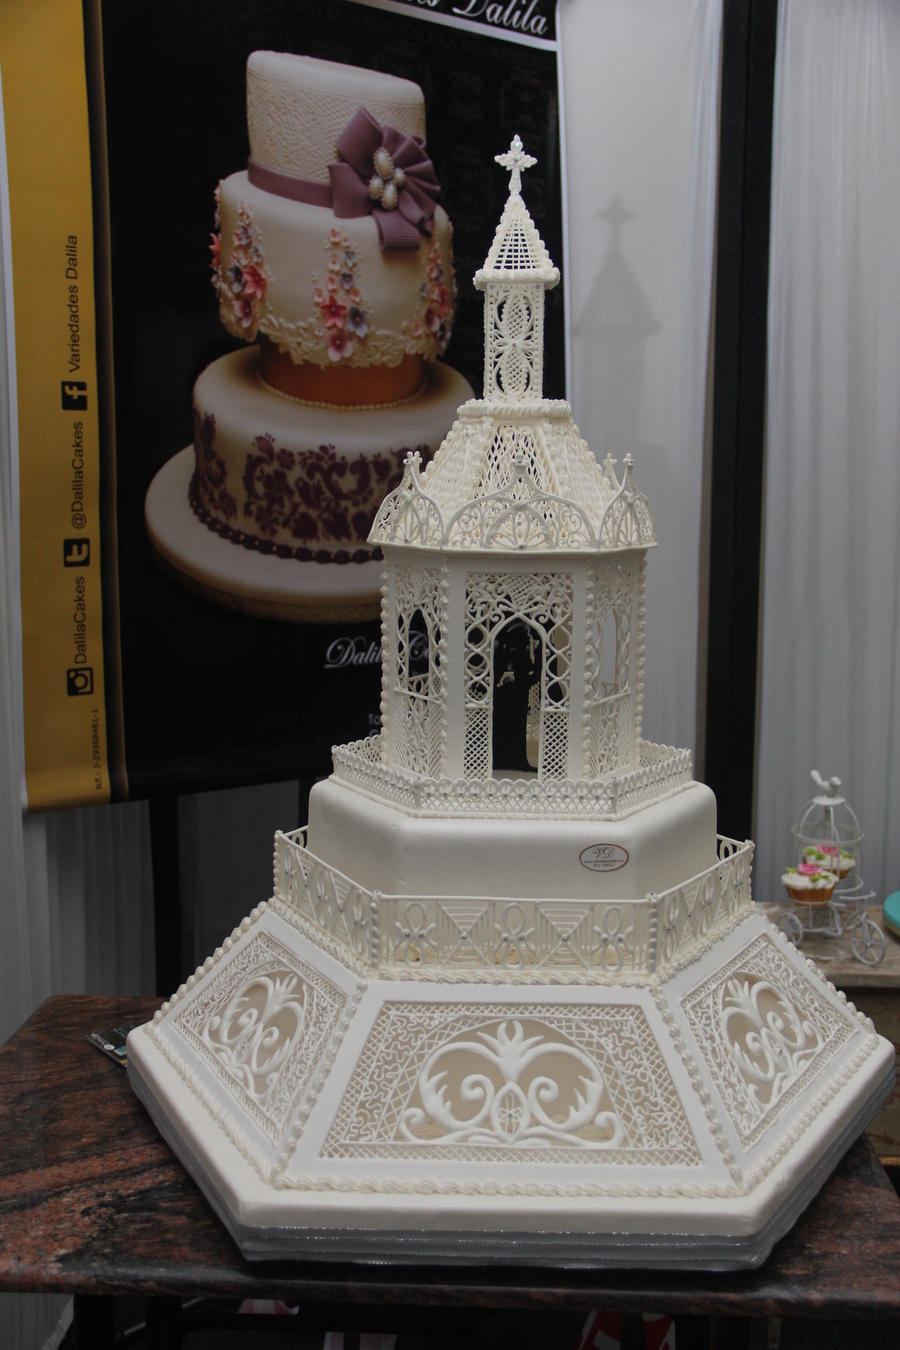 All Decoration And Chapel Made In Royal Icing ...